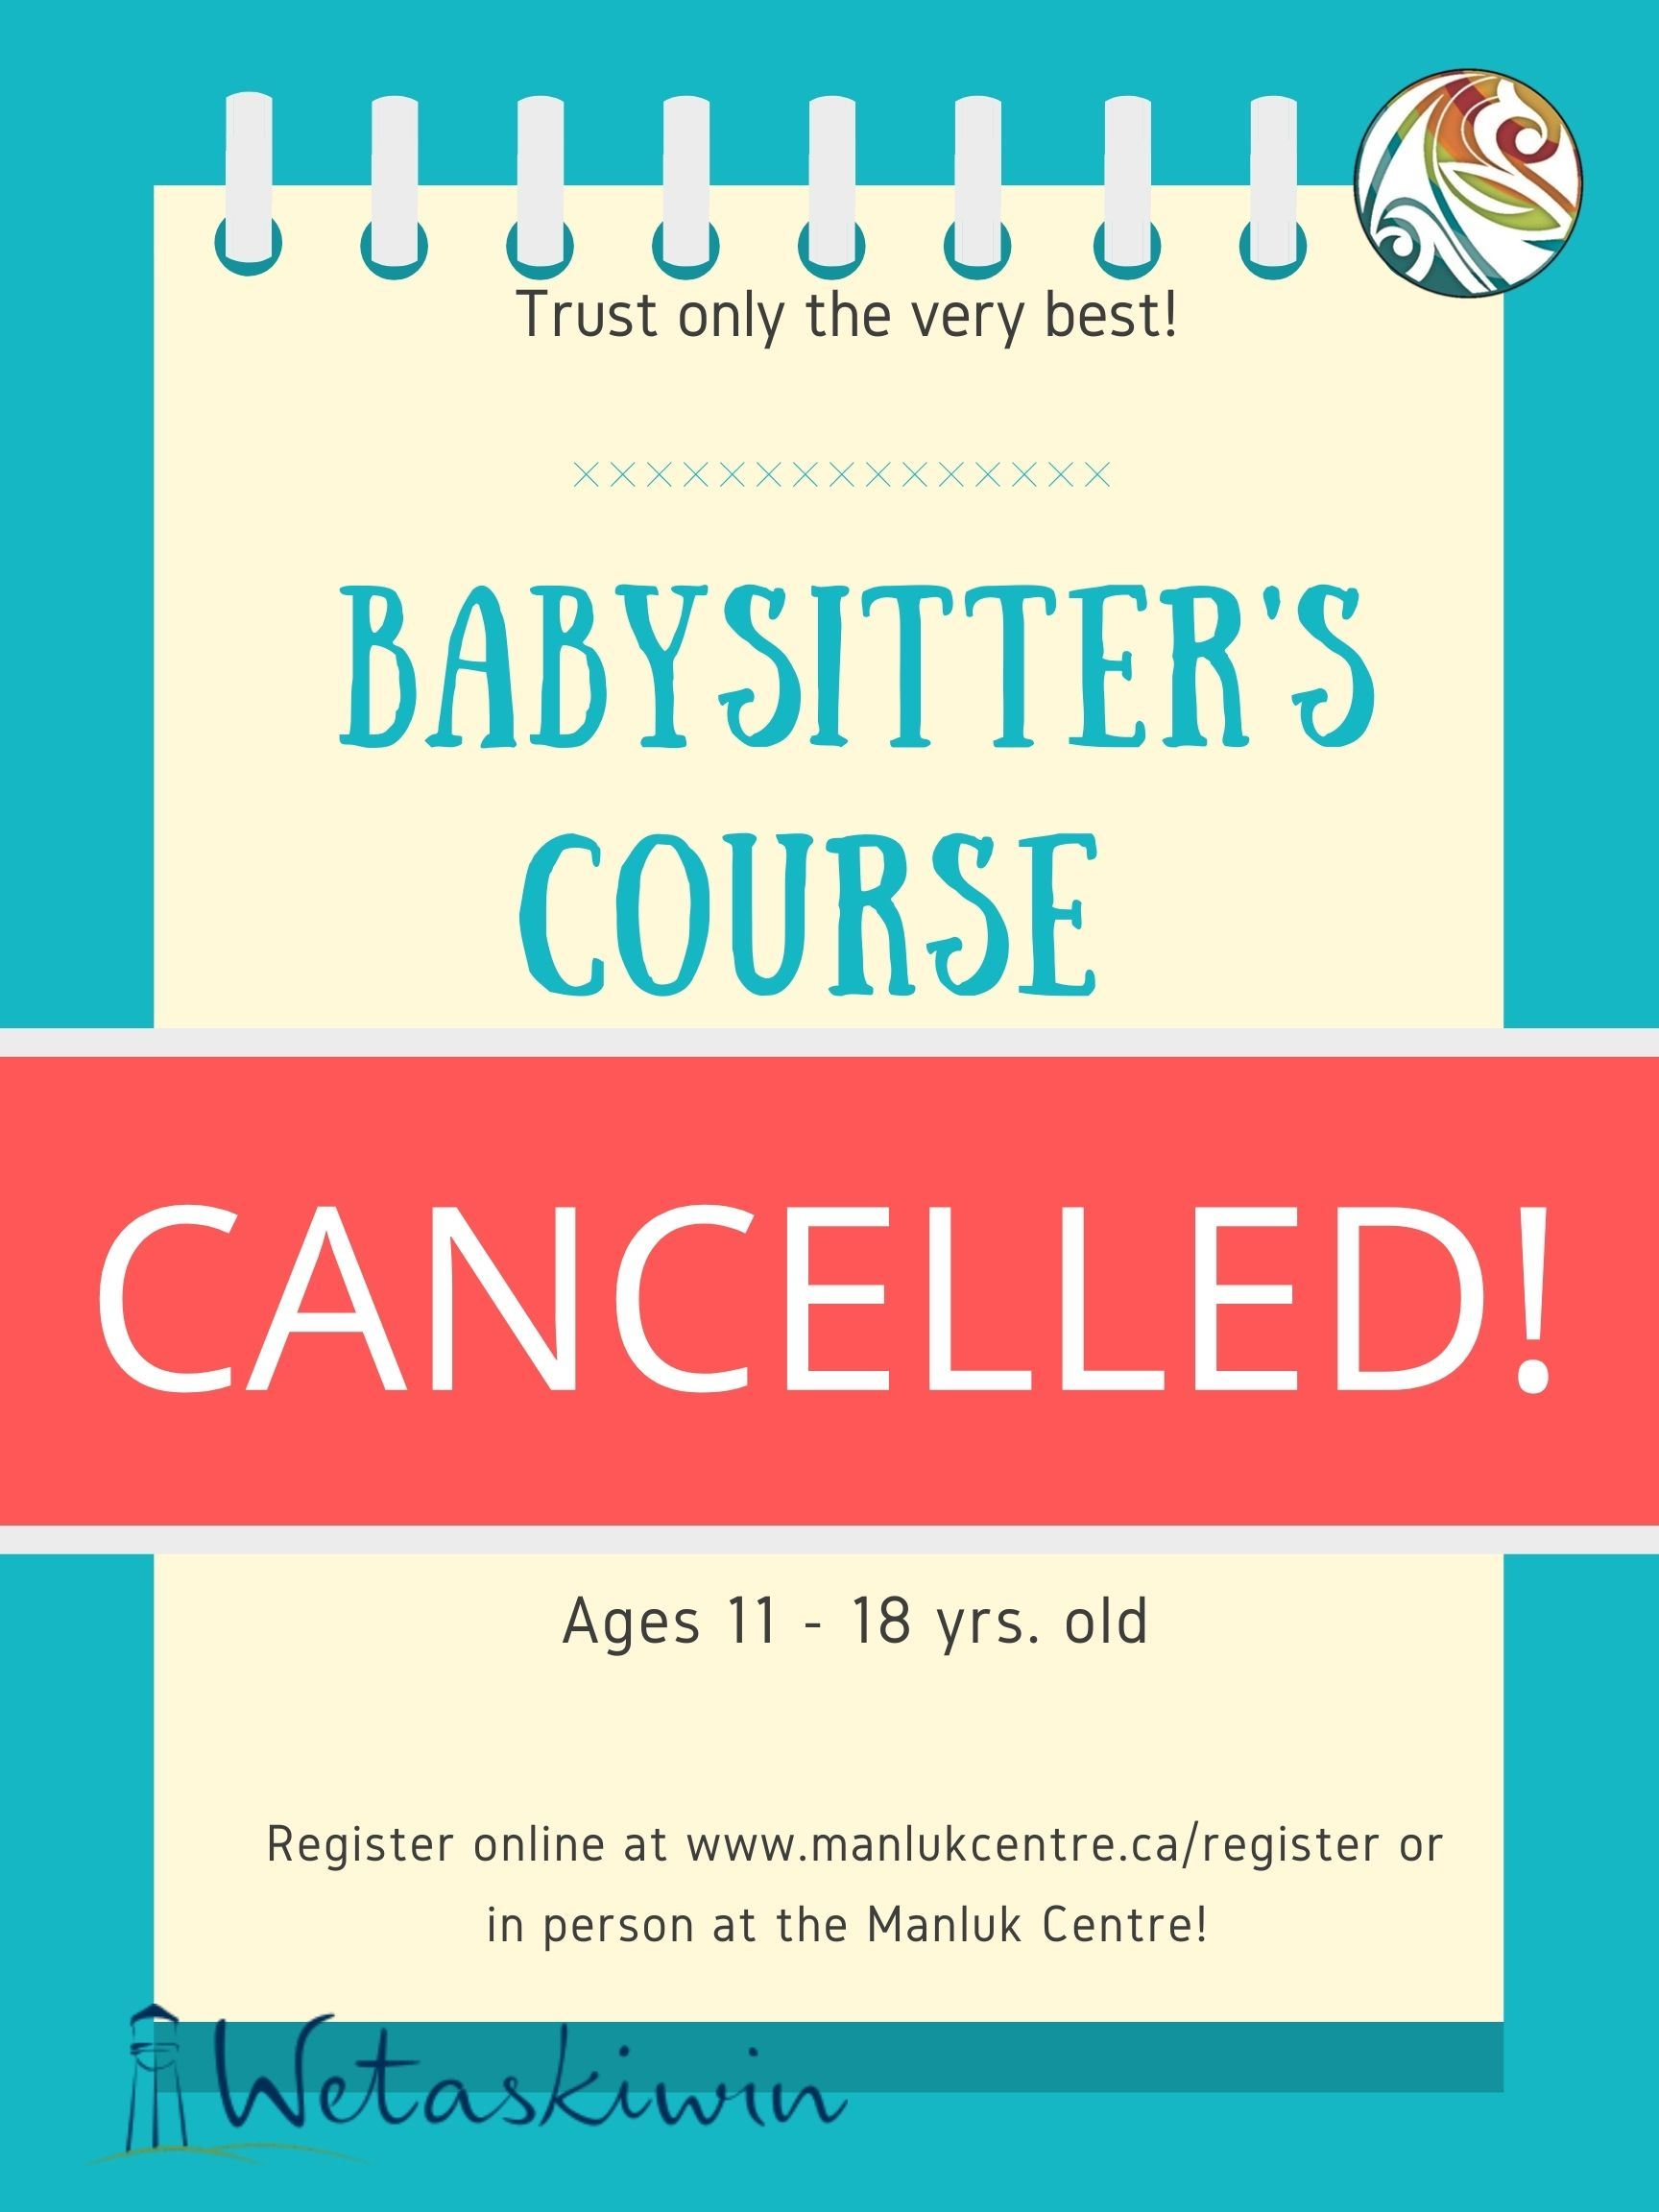 Cancelled Babysitters Course Fall October 9th 2020